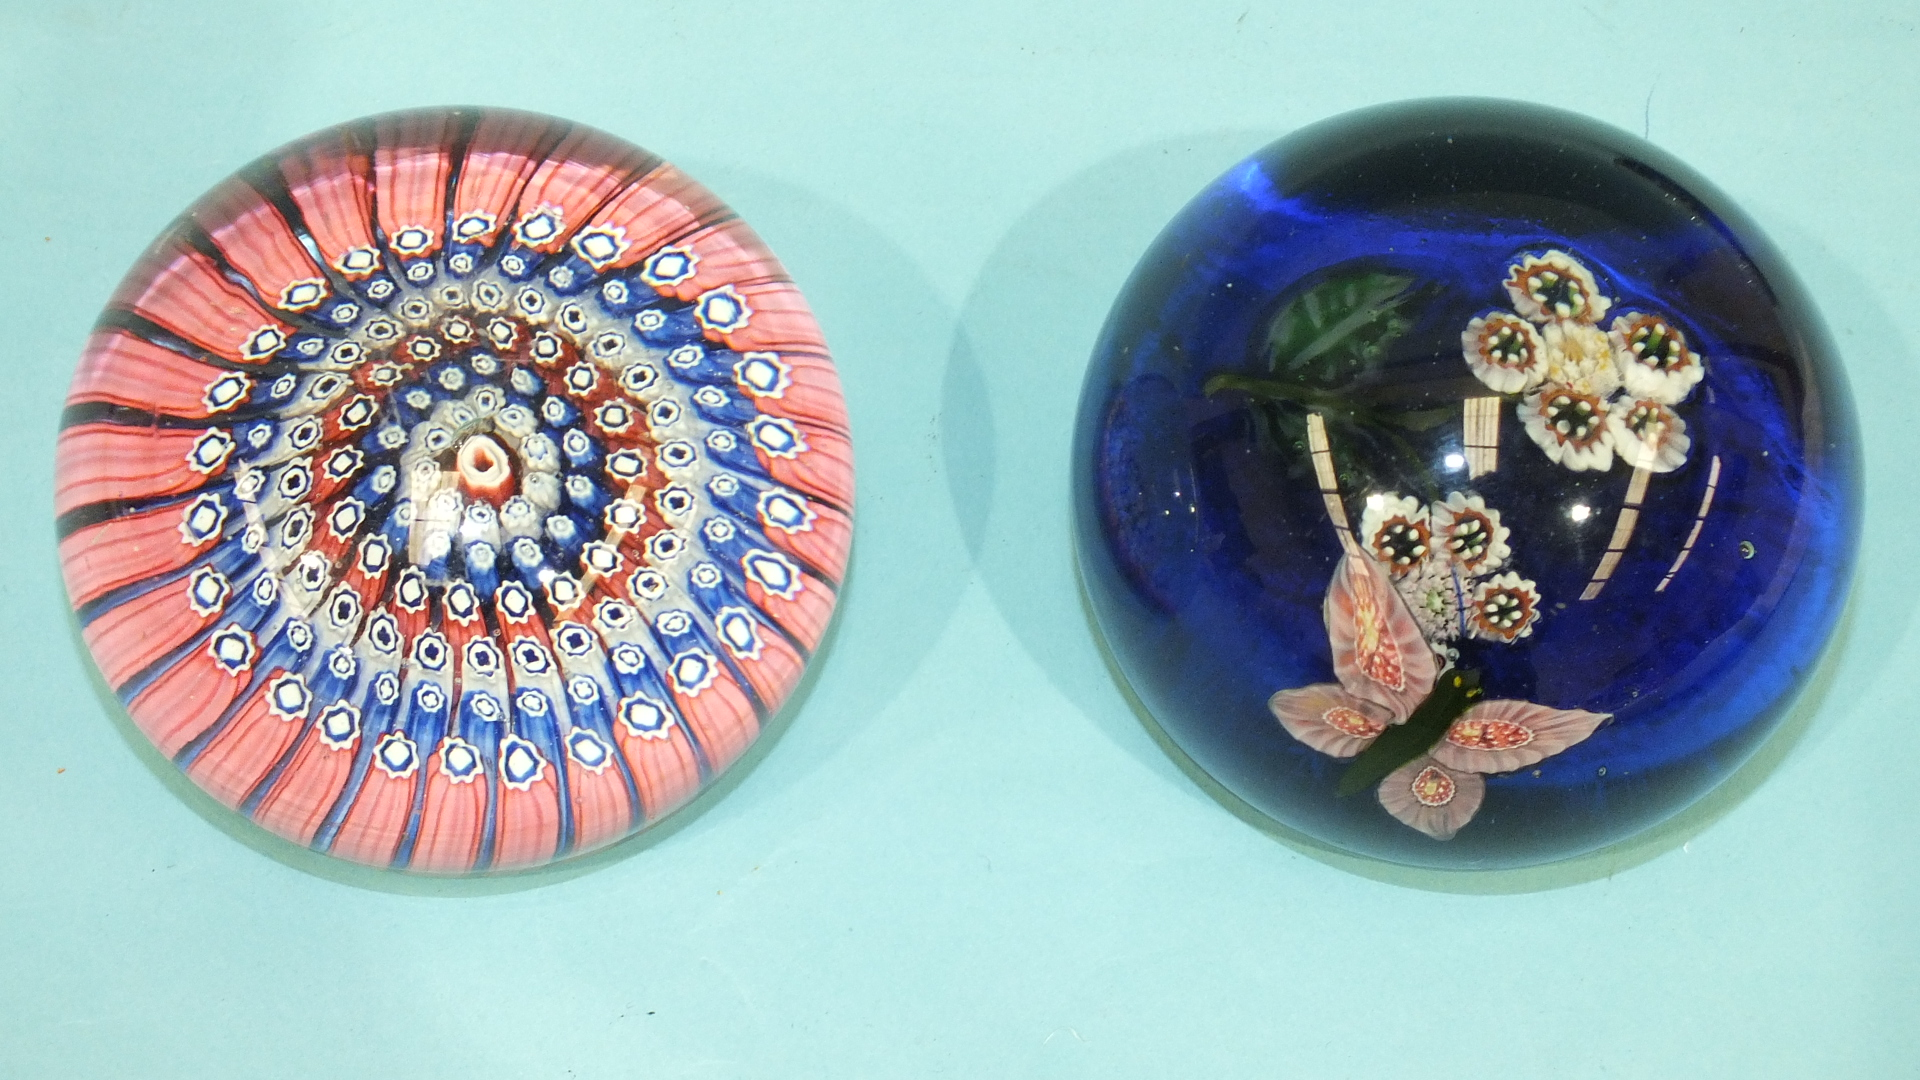 Lot 254 - A modern unmarked glass paperweight decorated with a butterfly and flowers and one other